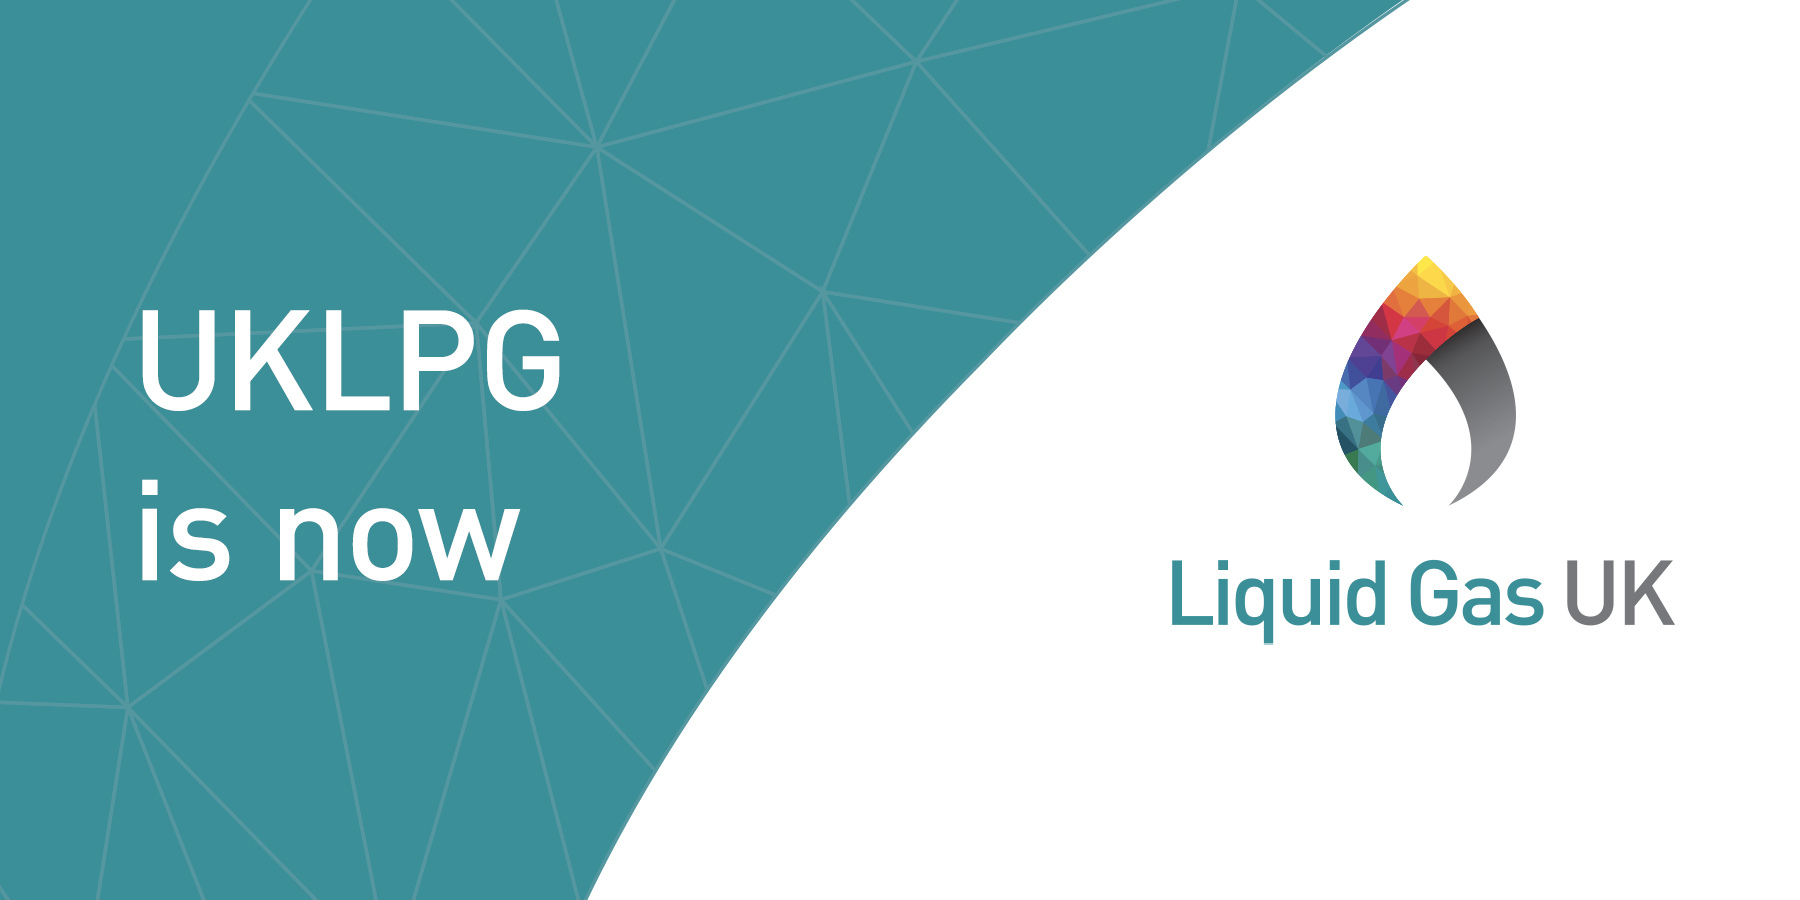 UKLPG is now Liquid Gas UK